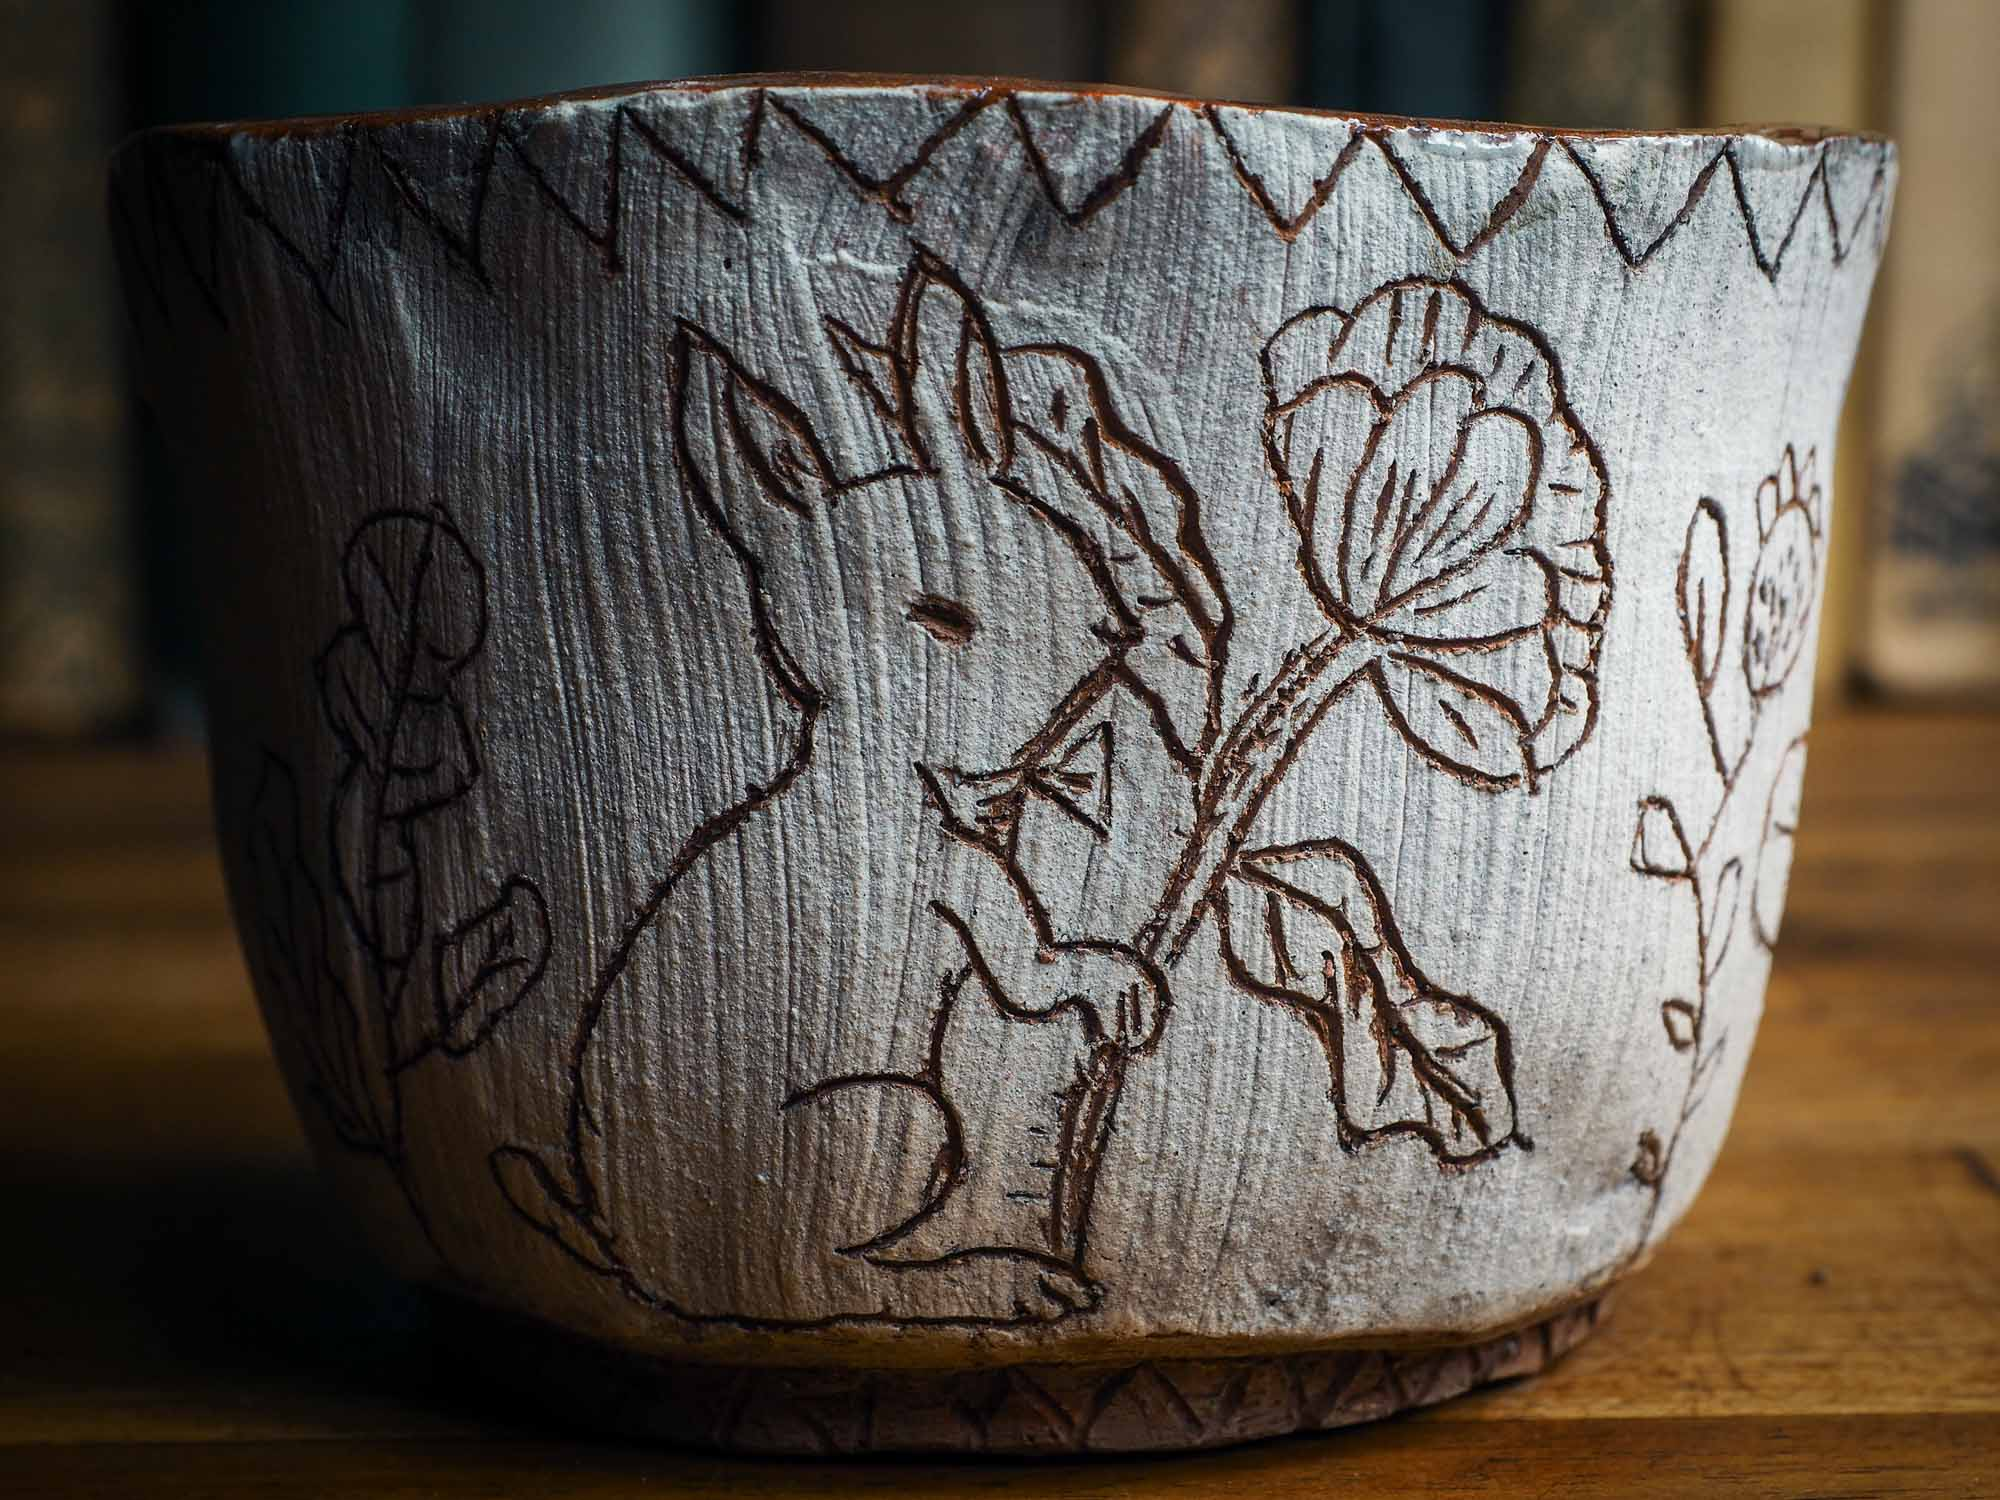 An original Idania Salcido Danita Art pinched ceramic cat pet food bowl. Handmade from locally foraged clay, this glazed ceramics one of a kind artwork is perfect for any kitchen plate and bowls unique collection. Thumbprints and  intentionally irregular shape give the bowl a cozy, warmly familiar feel when you pick it. A cute little white rabbit is carved on the sides.